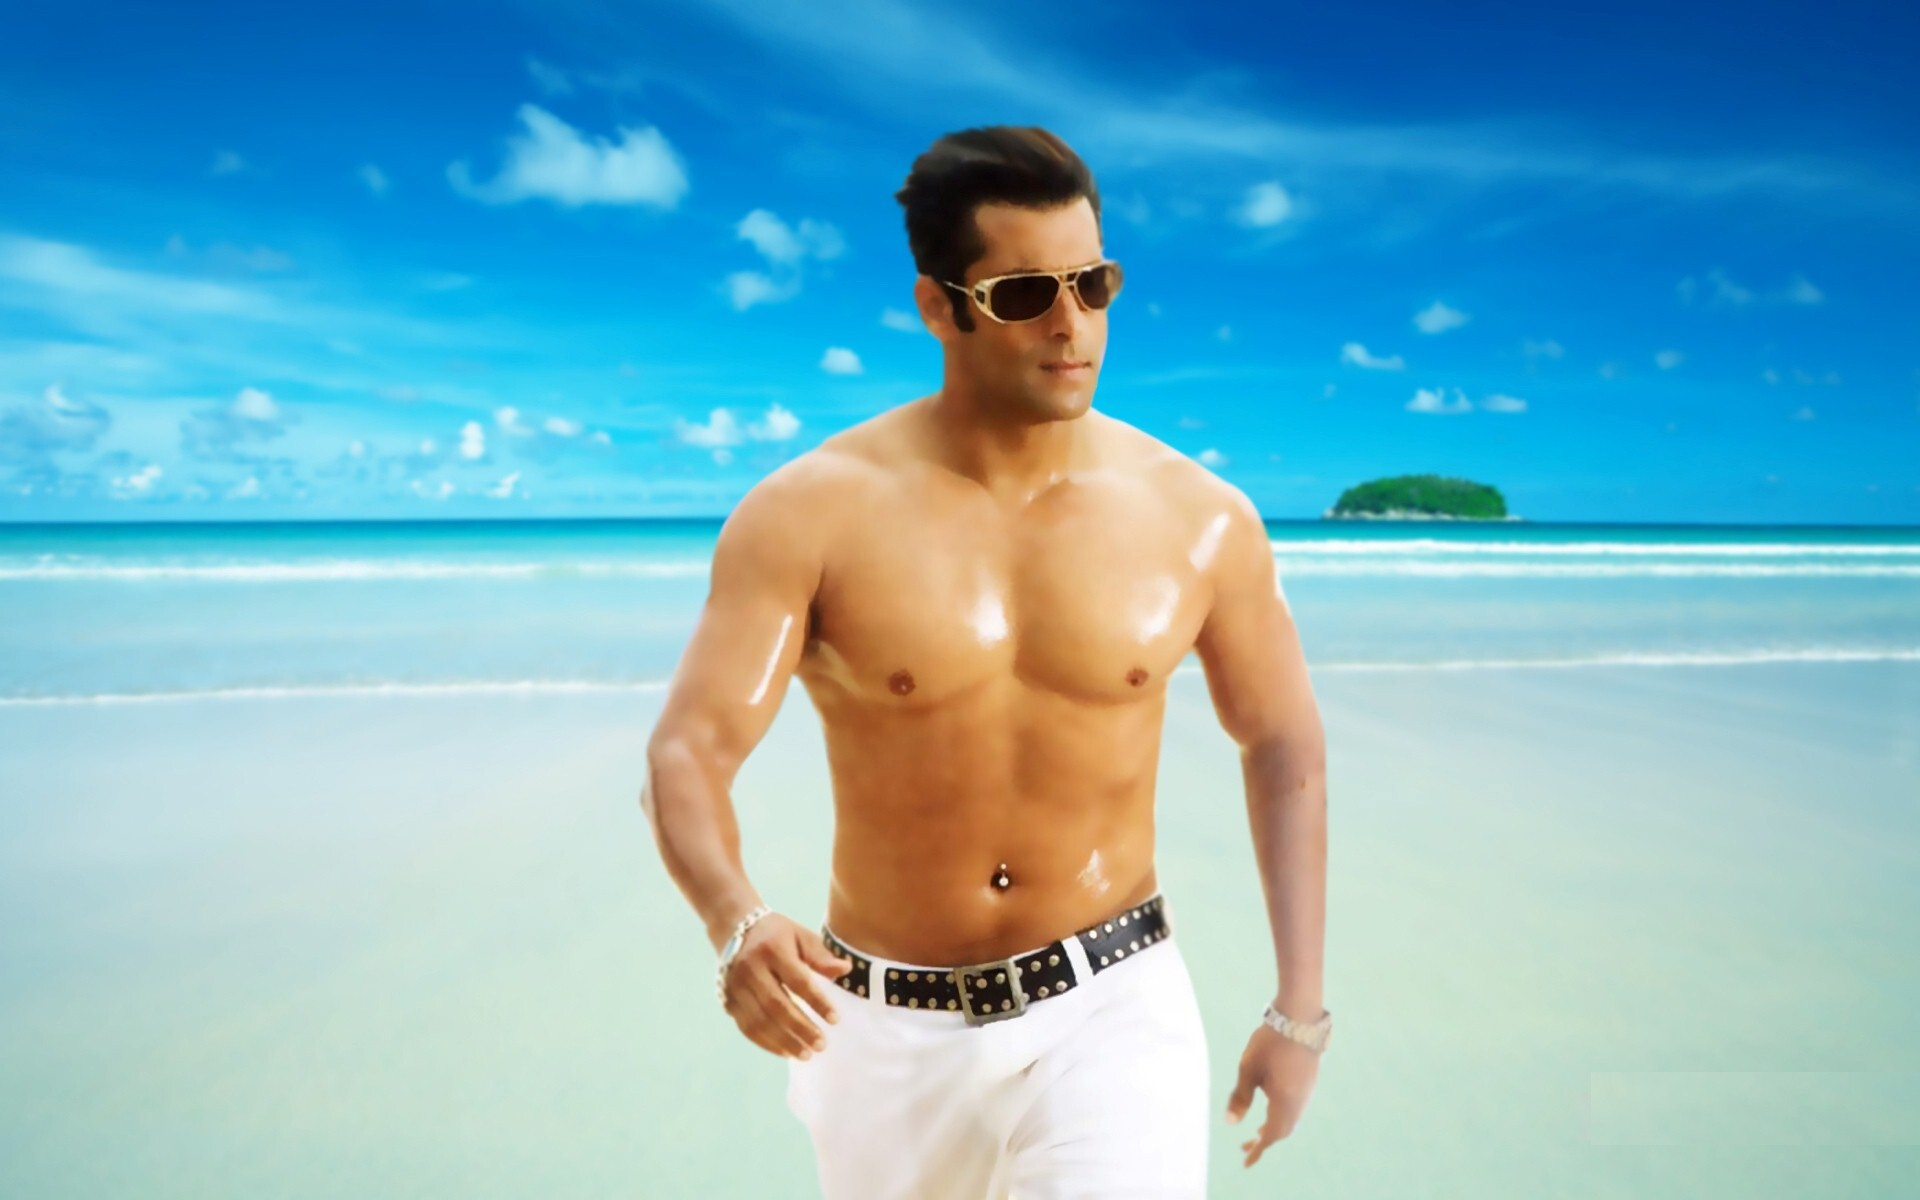 Bollywood Actor 6 Pack Body Of Salman Khan In Movie Scene Hd Photos